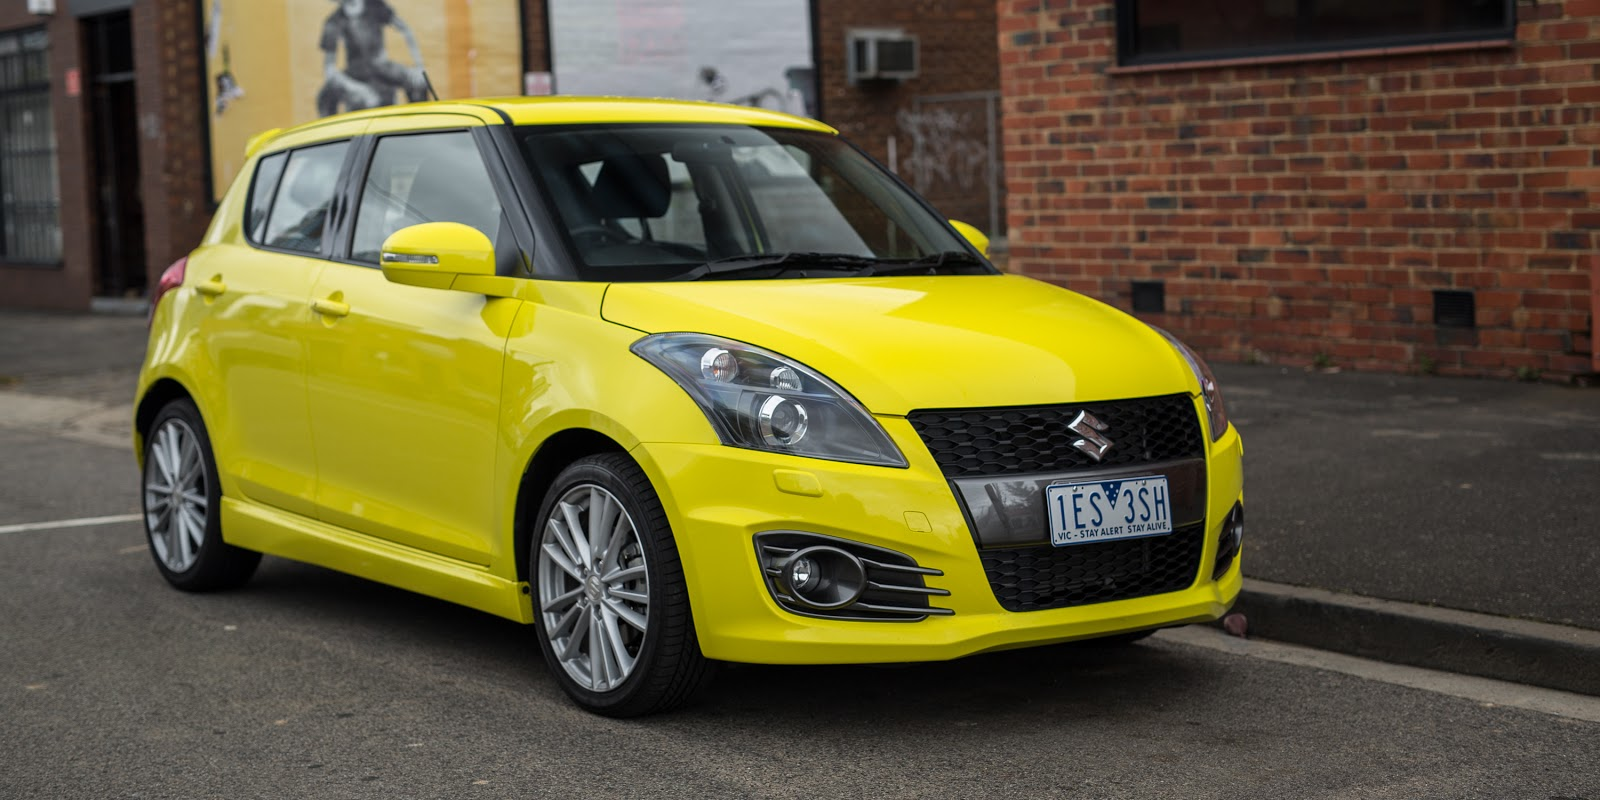 suzuki-swift-2016-3